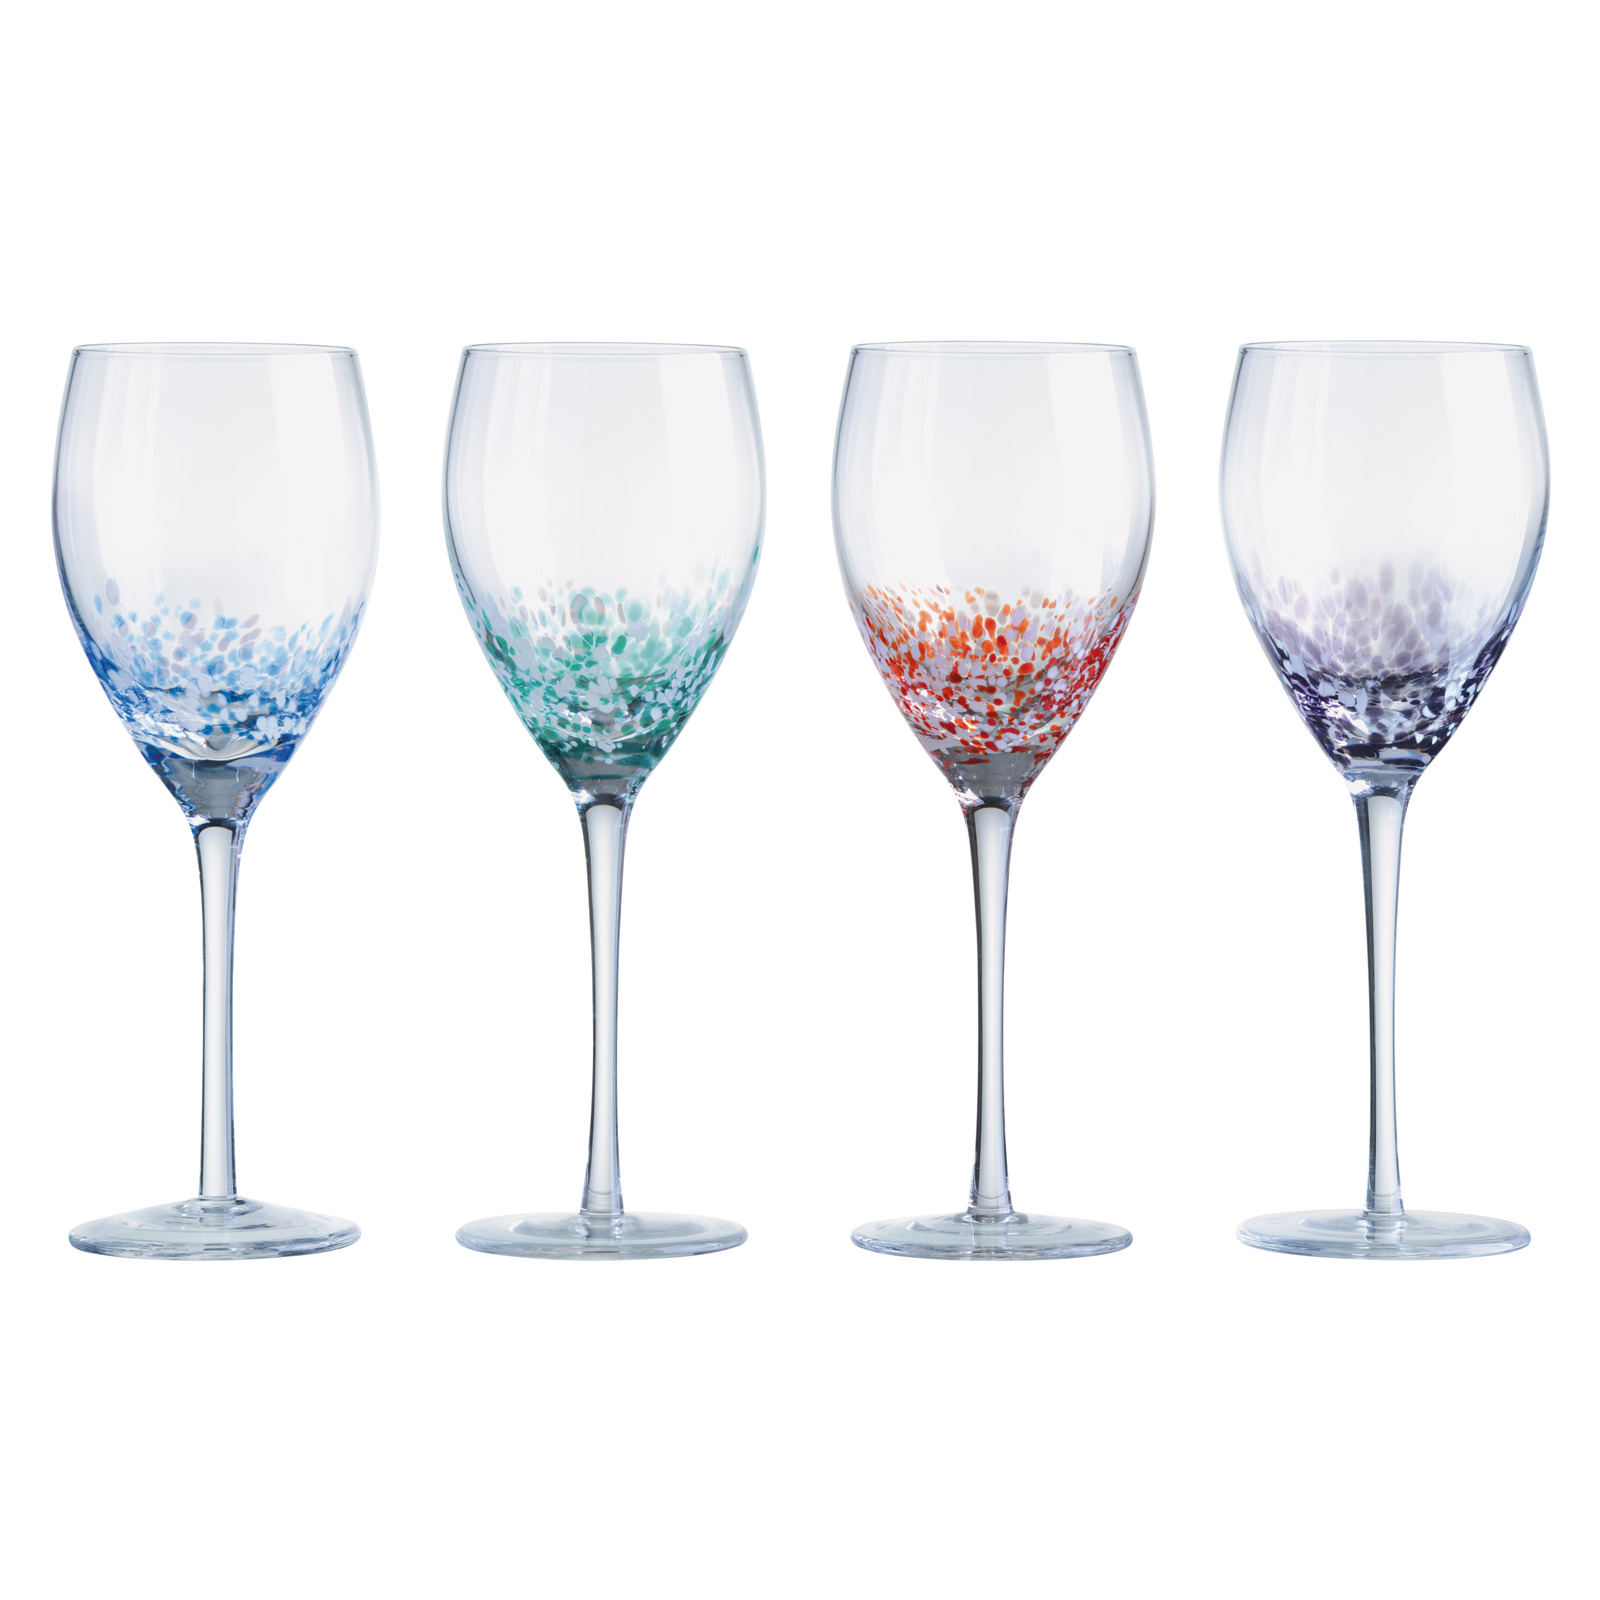 Set of 4 Speckle Wine Glasses